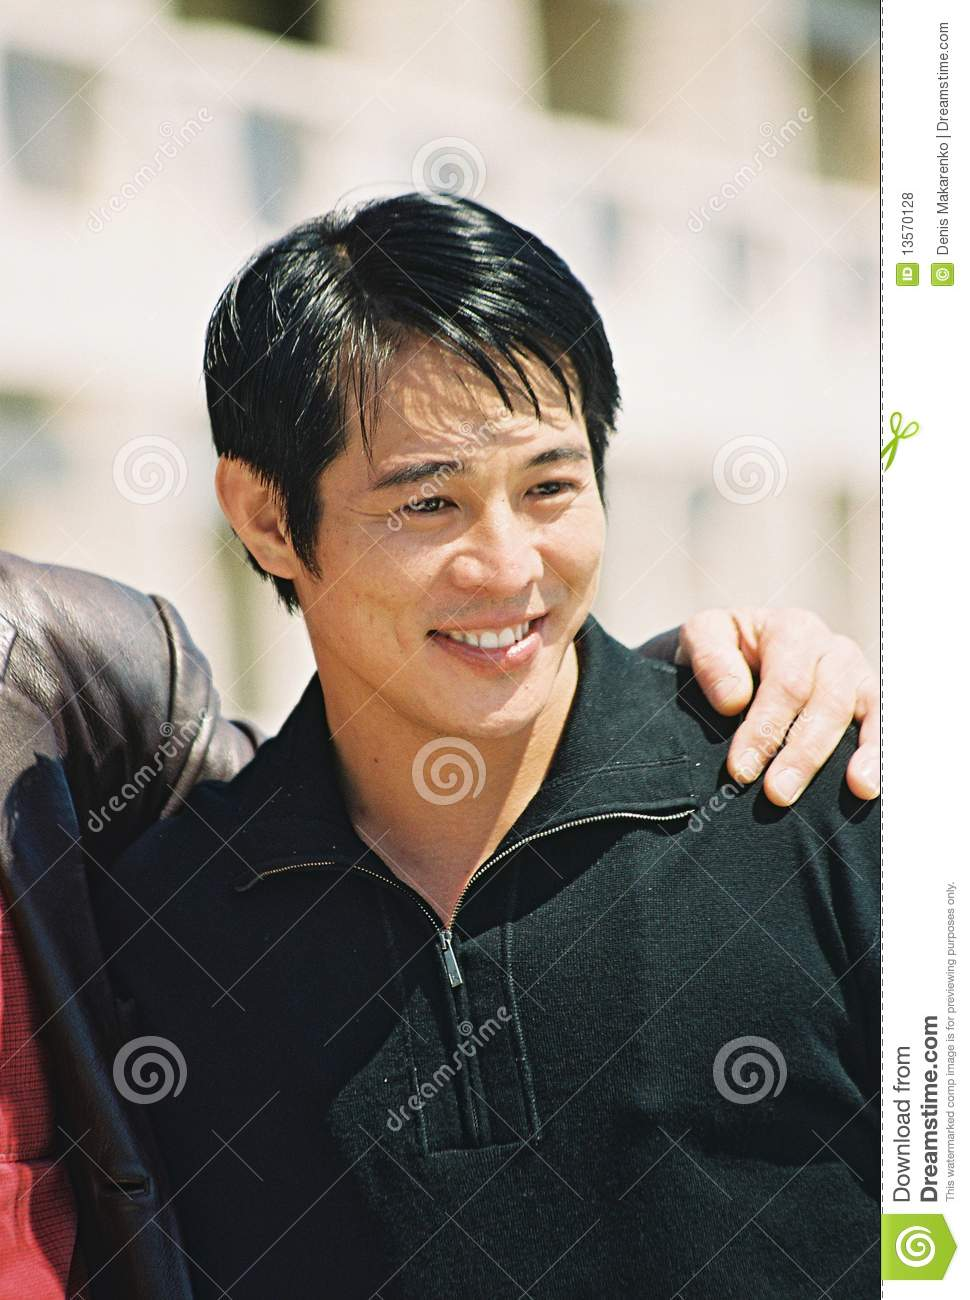 CANNES, FRANCE - MAY 12: Jet Li attends the photocall Kiss of the ...